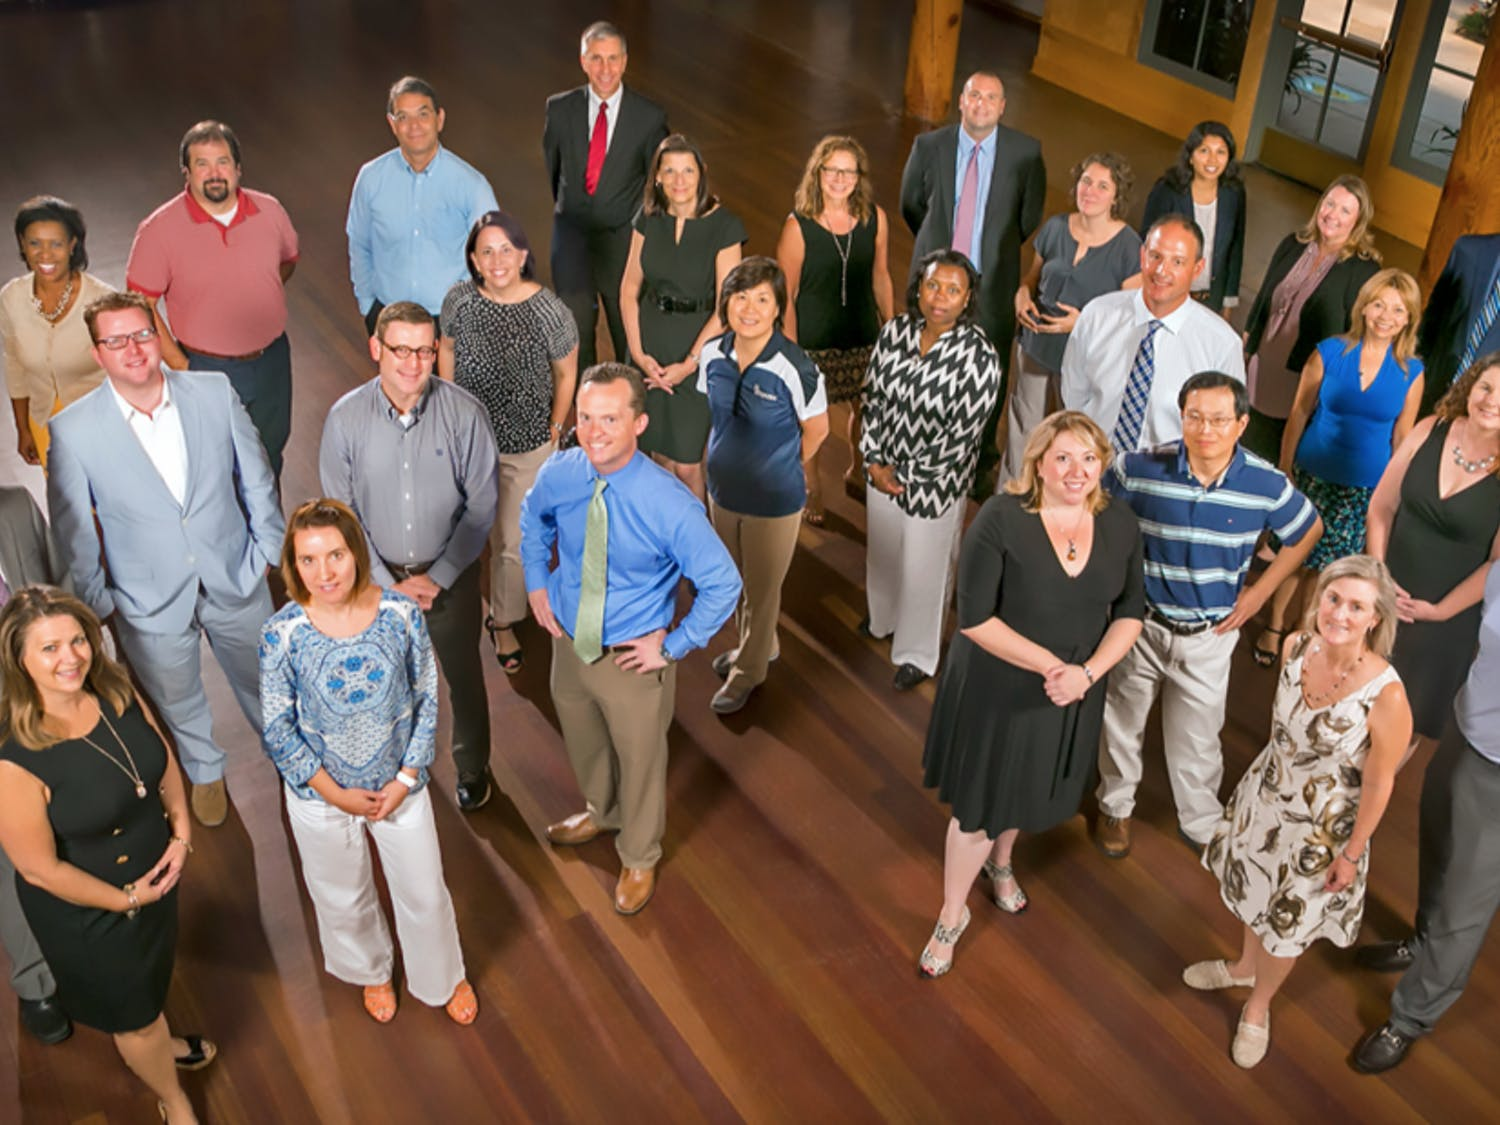 The 26 participants of the Duke Leadership Academy included employees in the Divinity School, Duke Athletics and the Law School, among others.